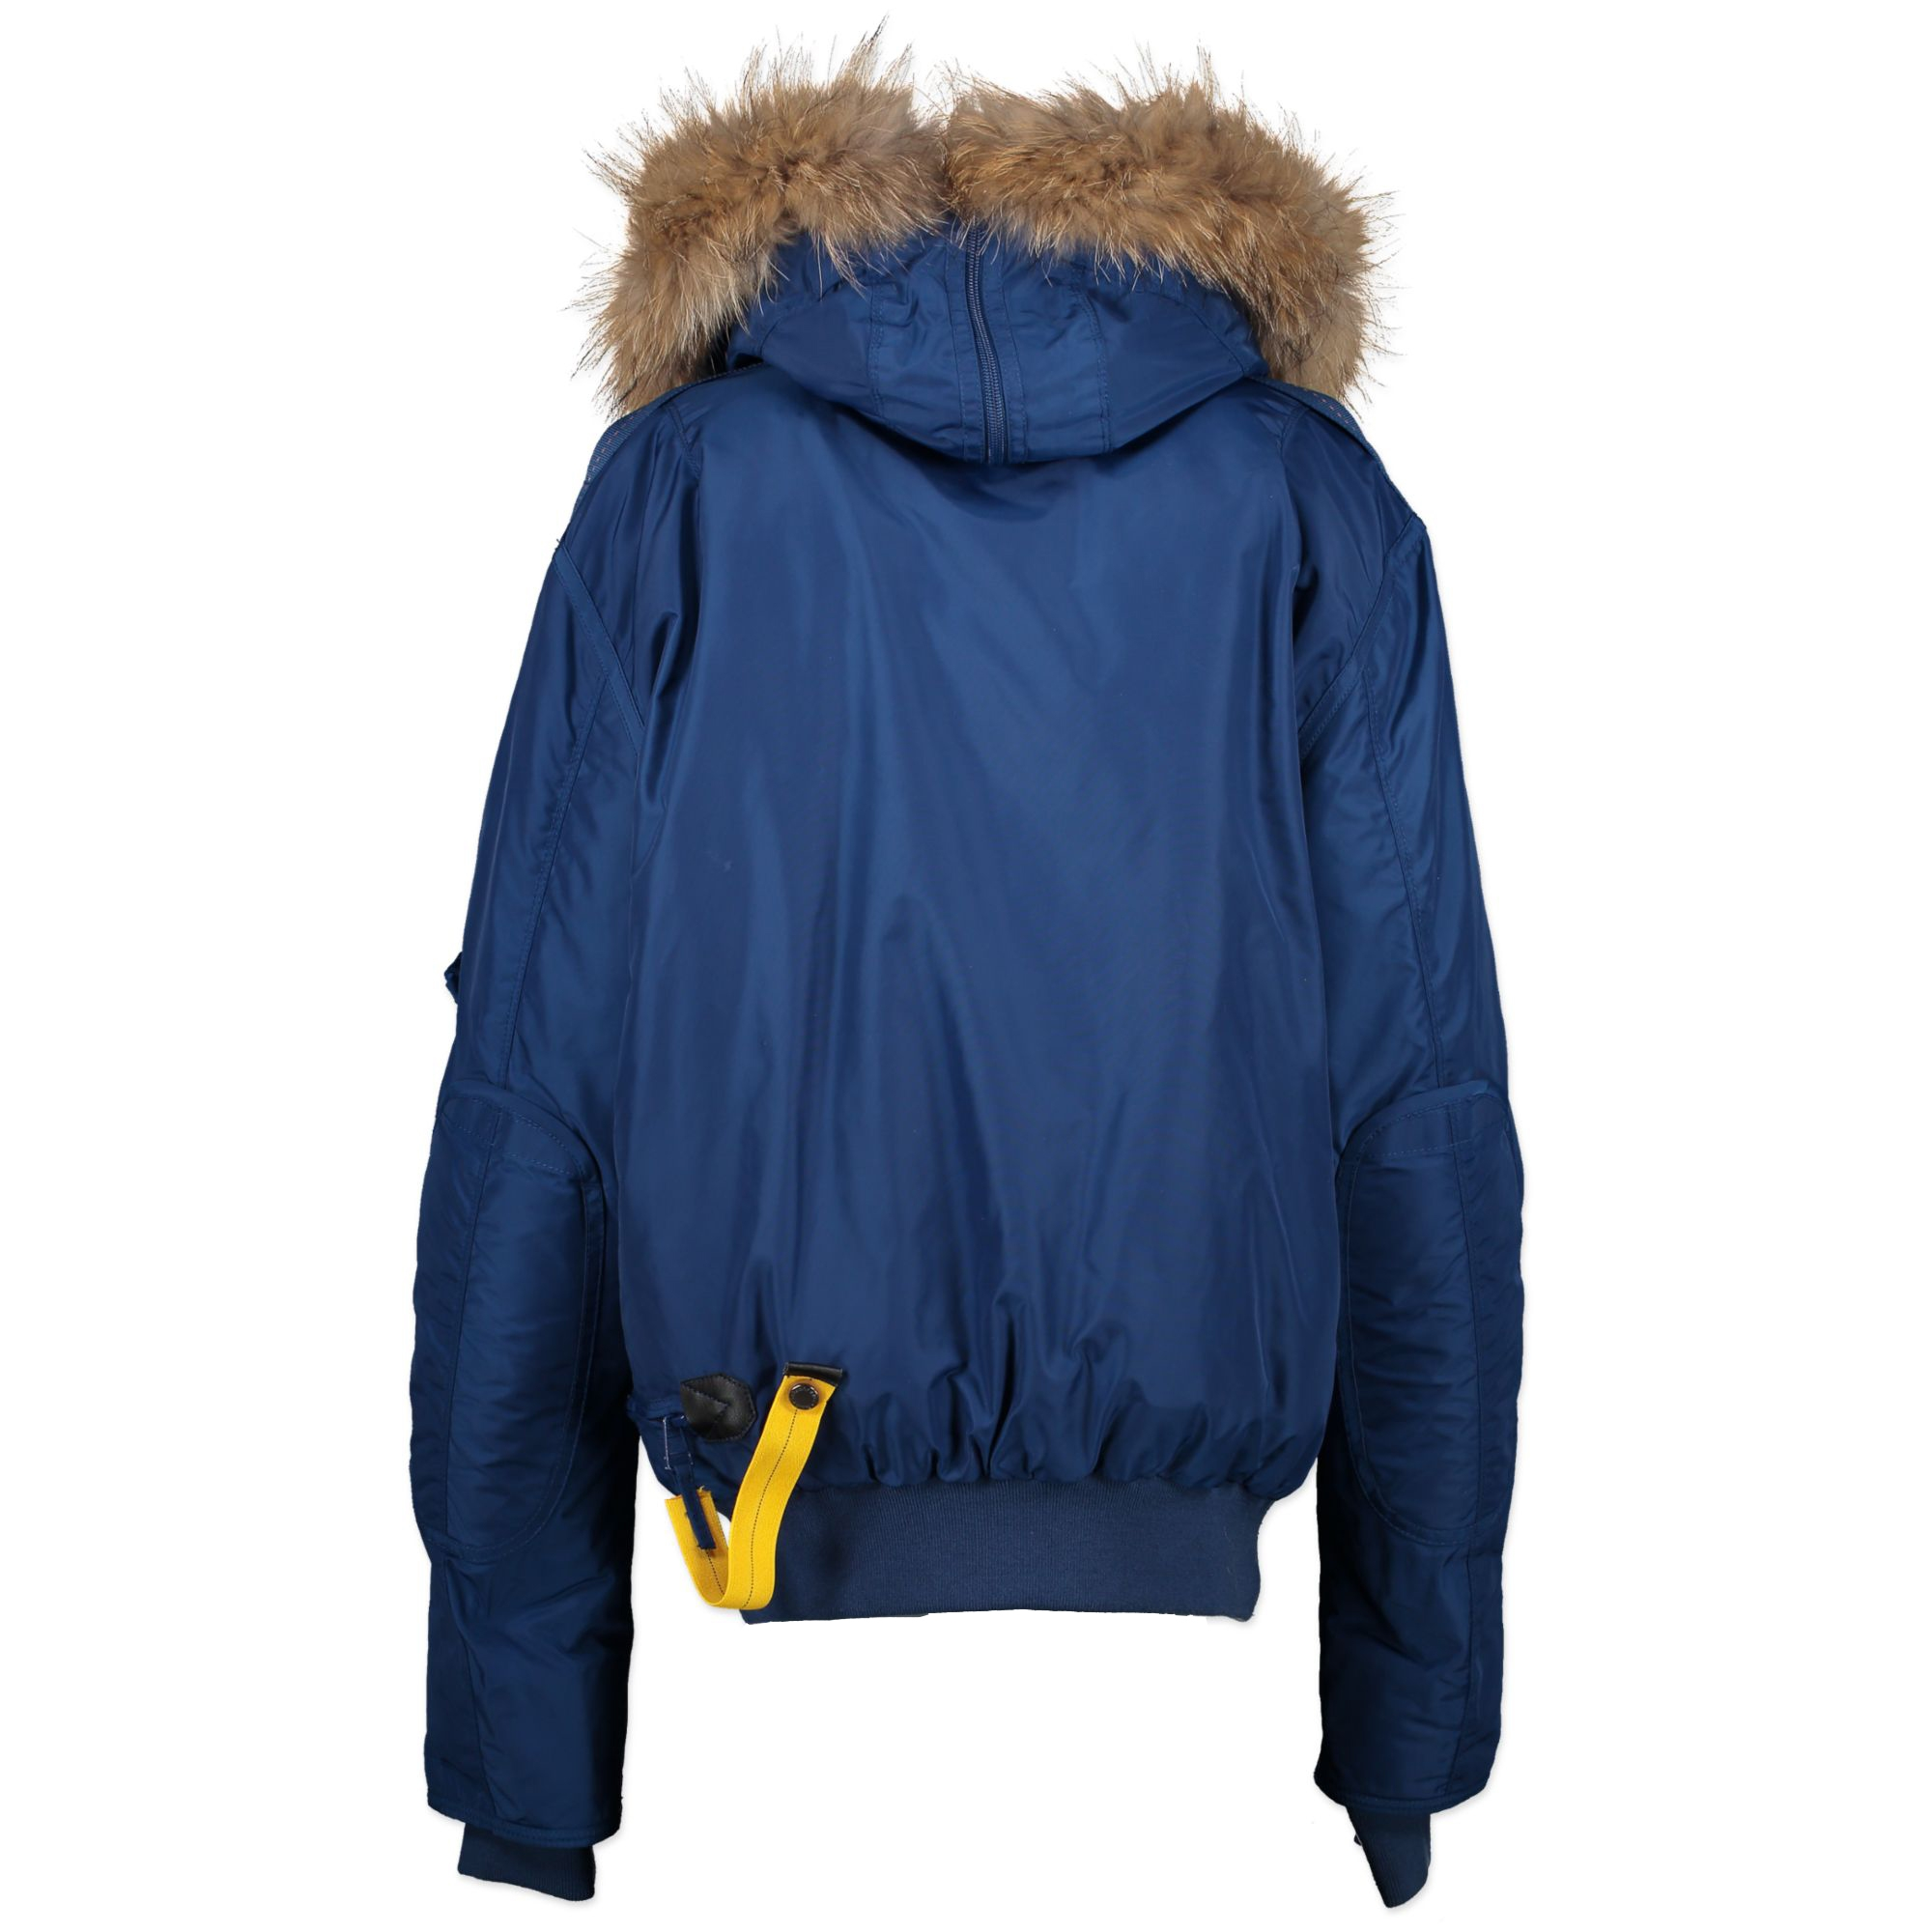 Parajumpers Blue Puffer Jacket - Size L